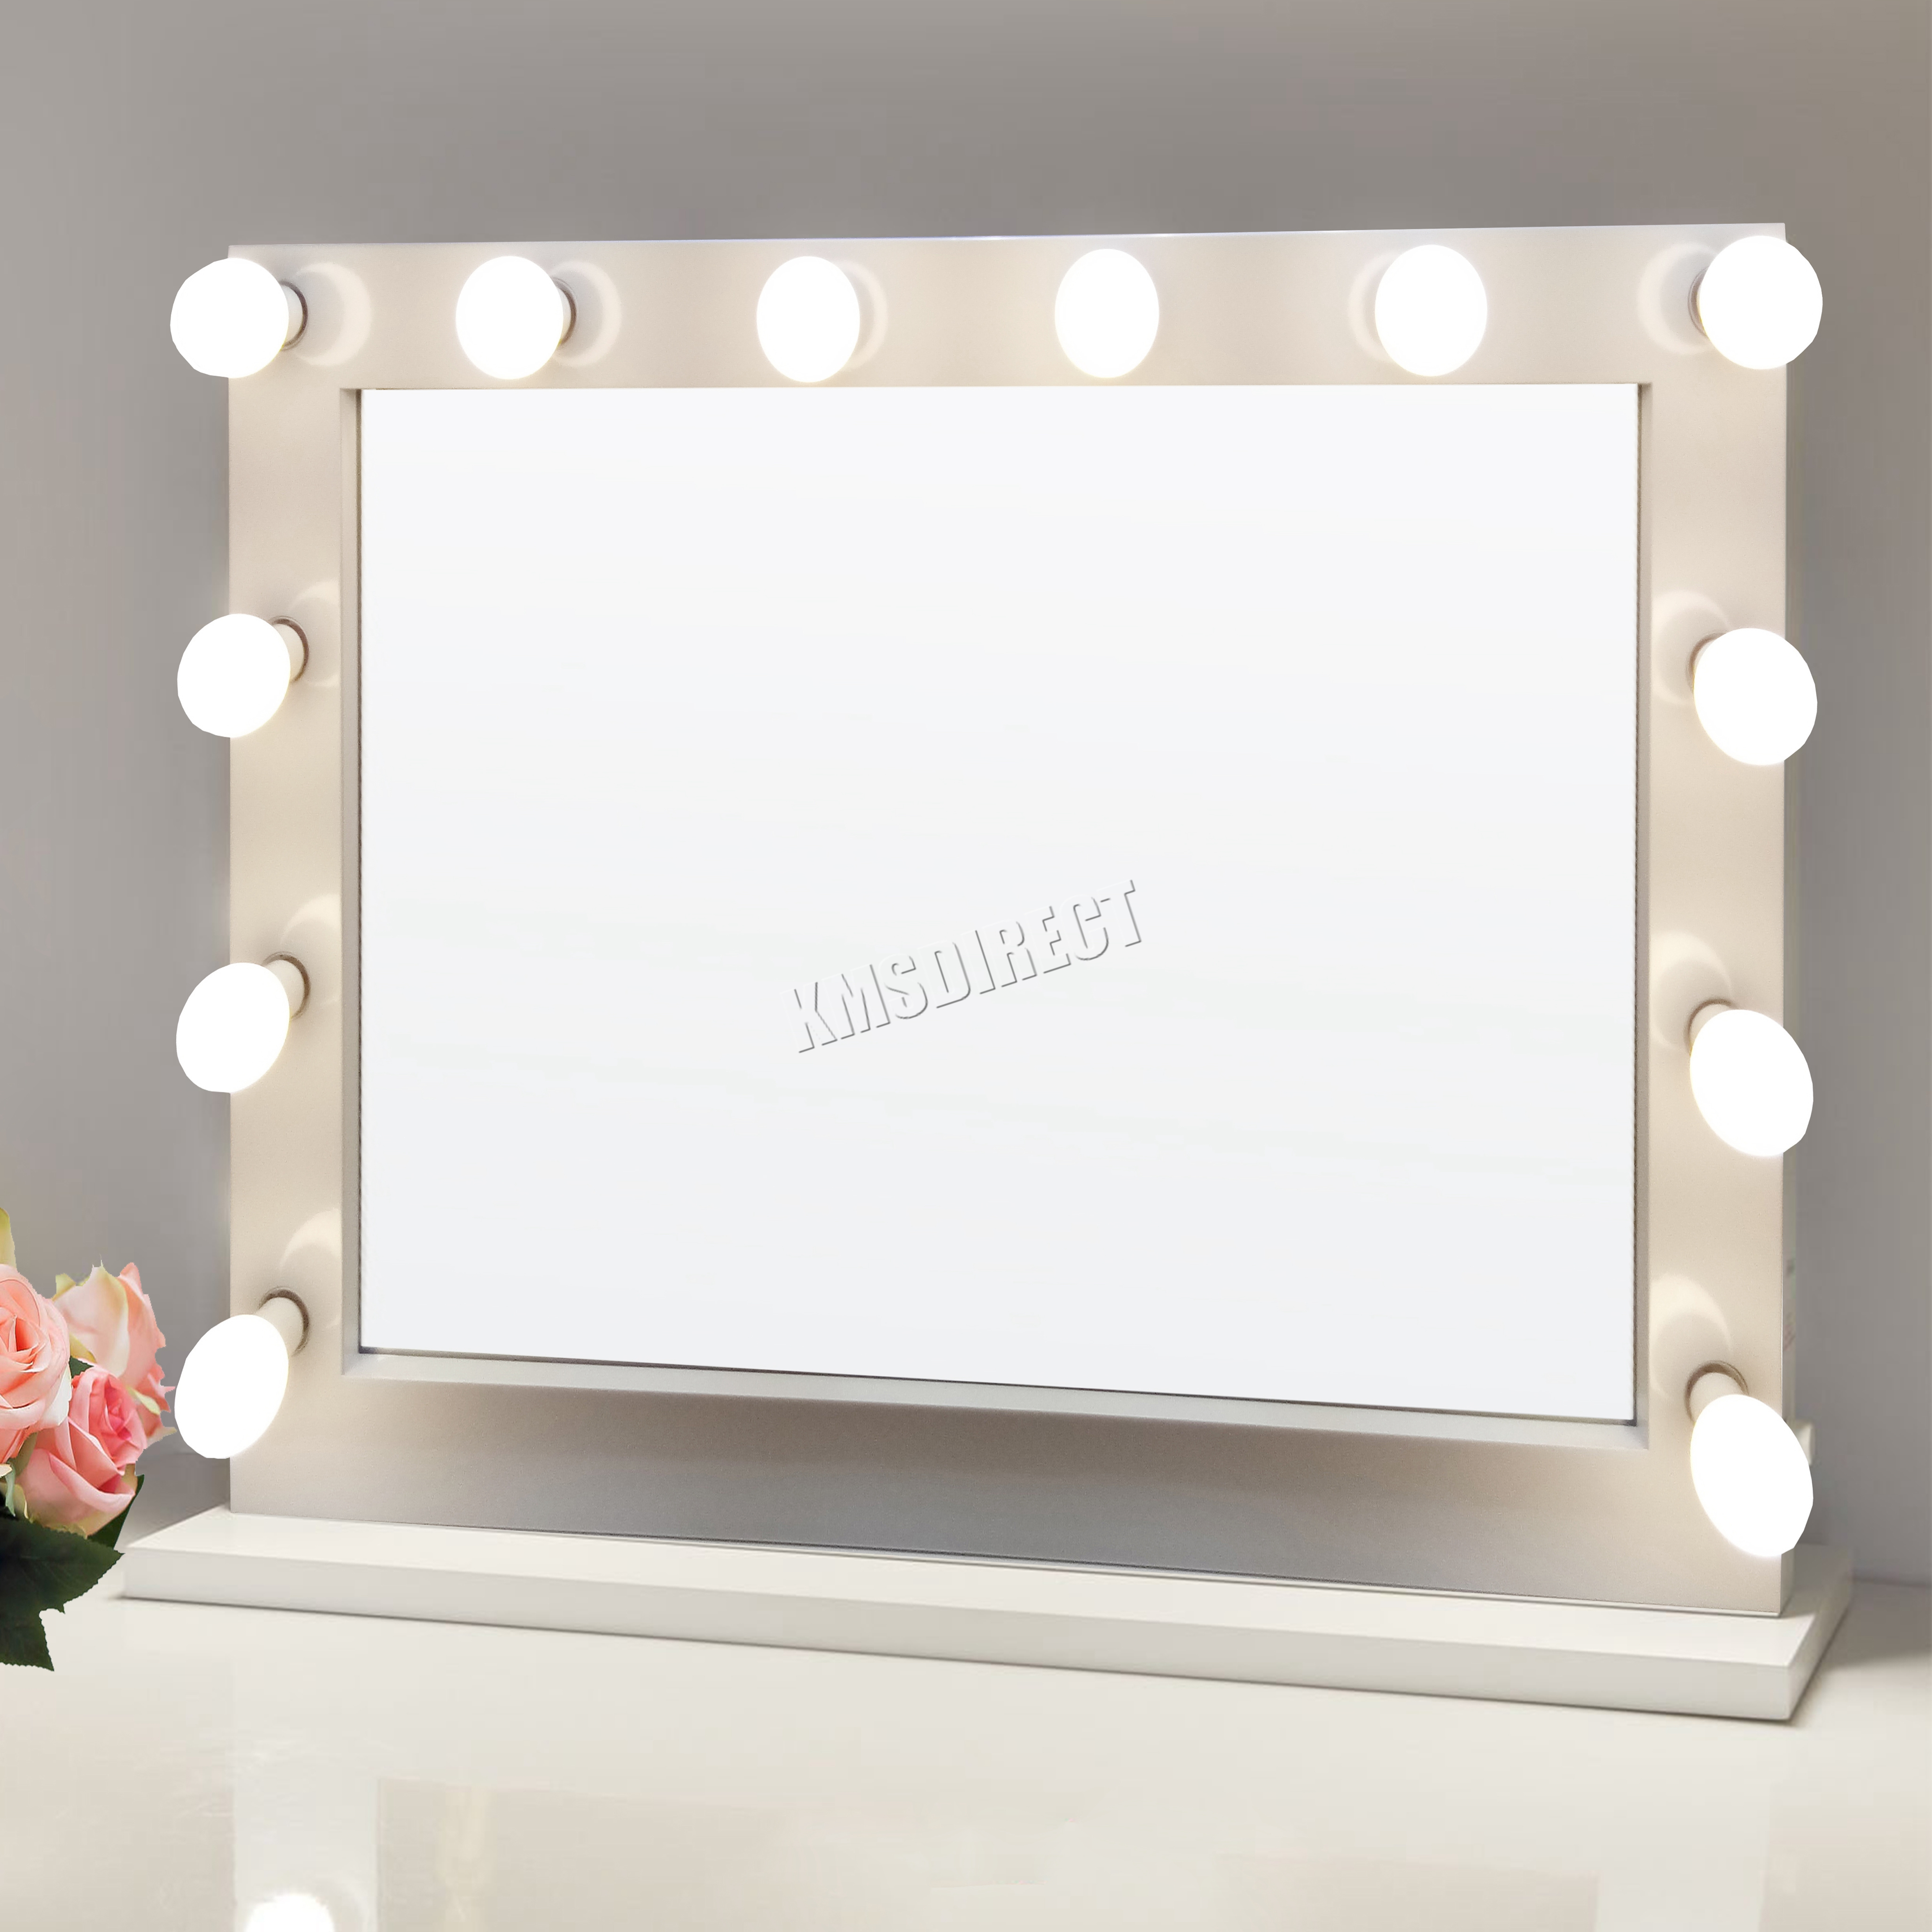 Led Beauty Mirror Foxhunter Makeup Mirror Led 12 Bulbs Light Cosmetic Beauty